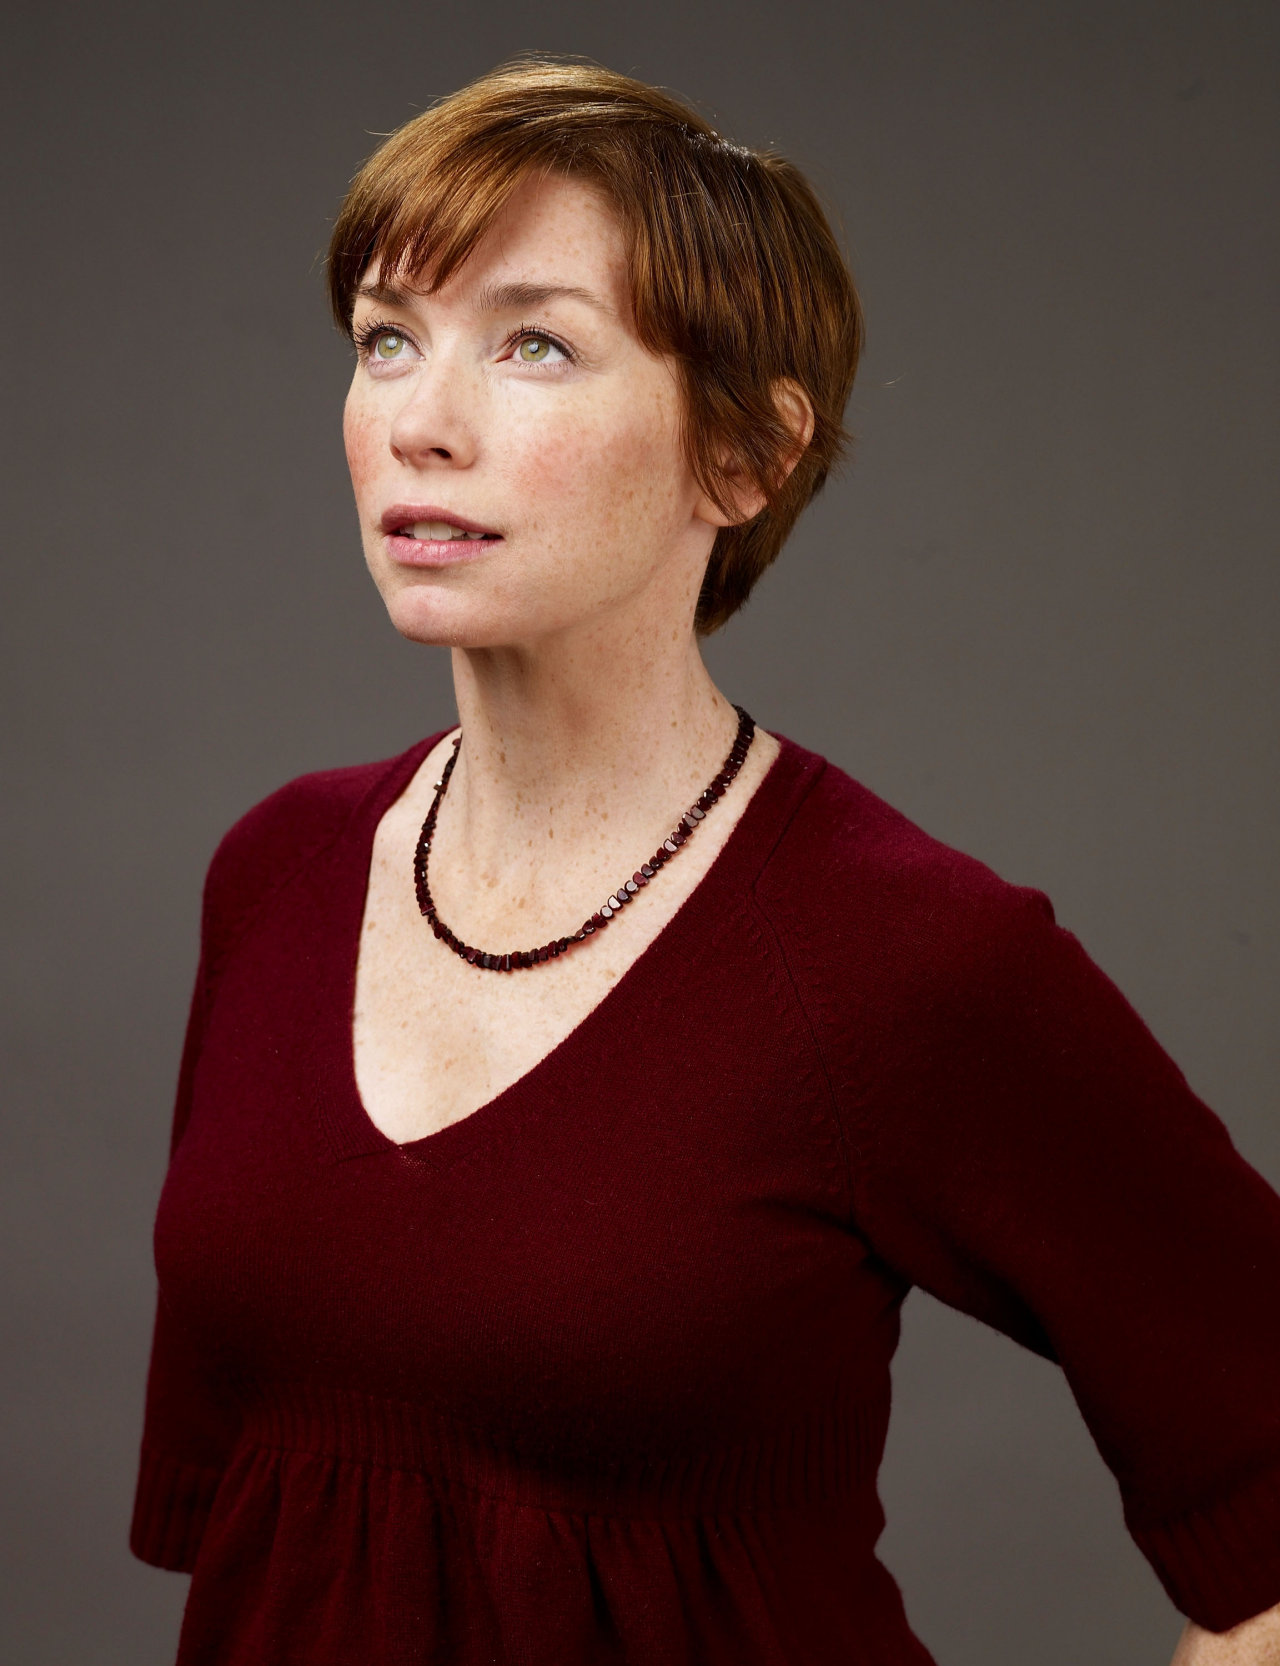 Julianne Nicholson leaked wallpapers